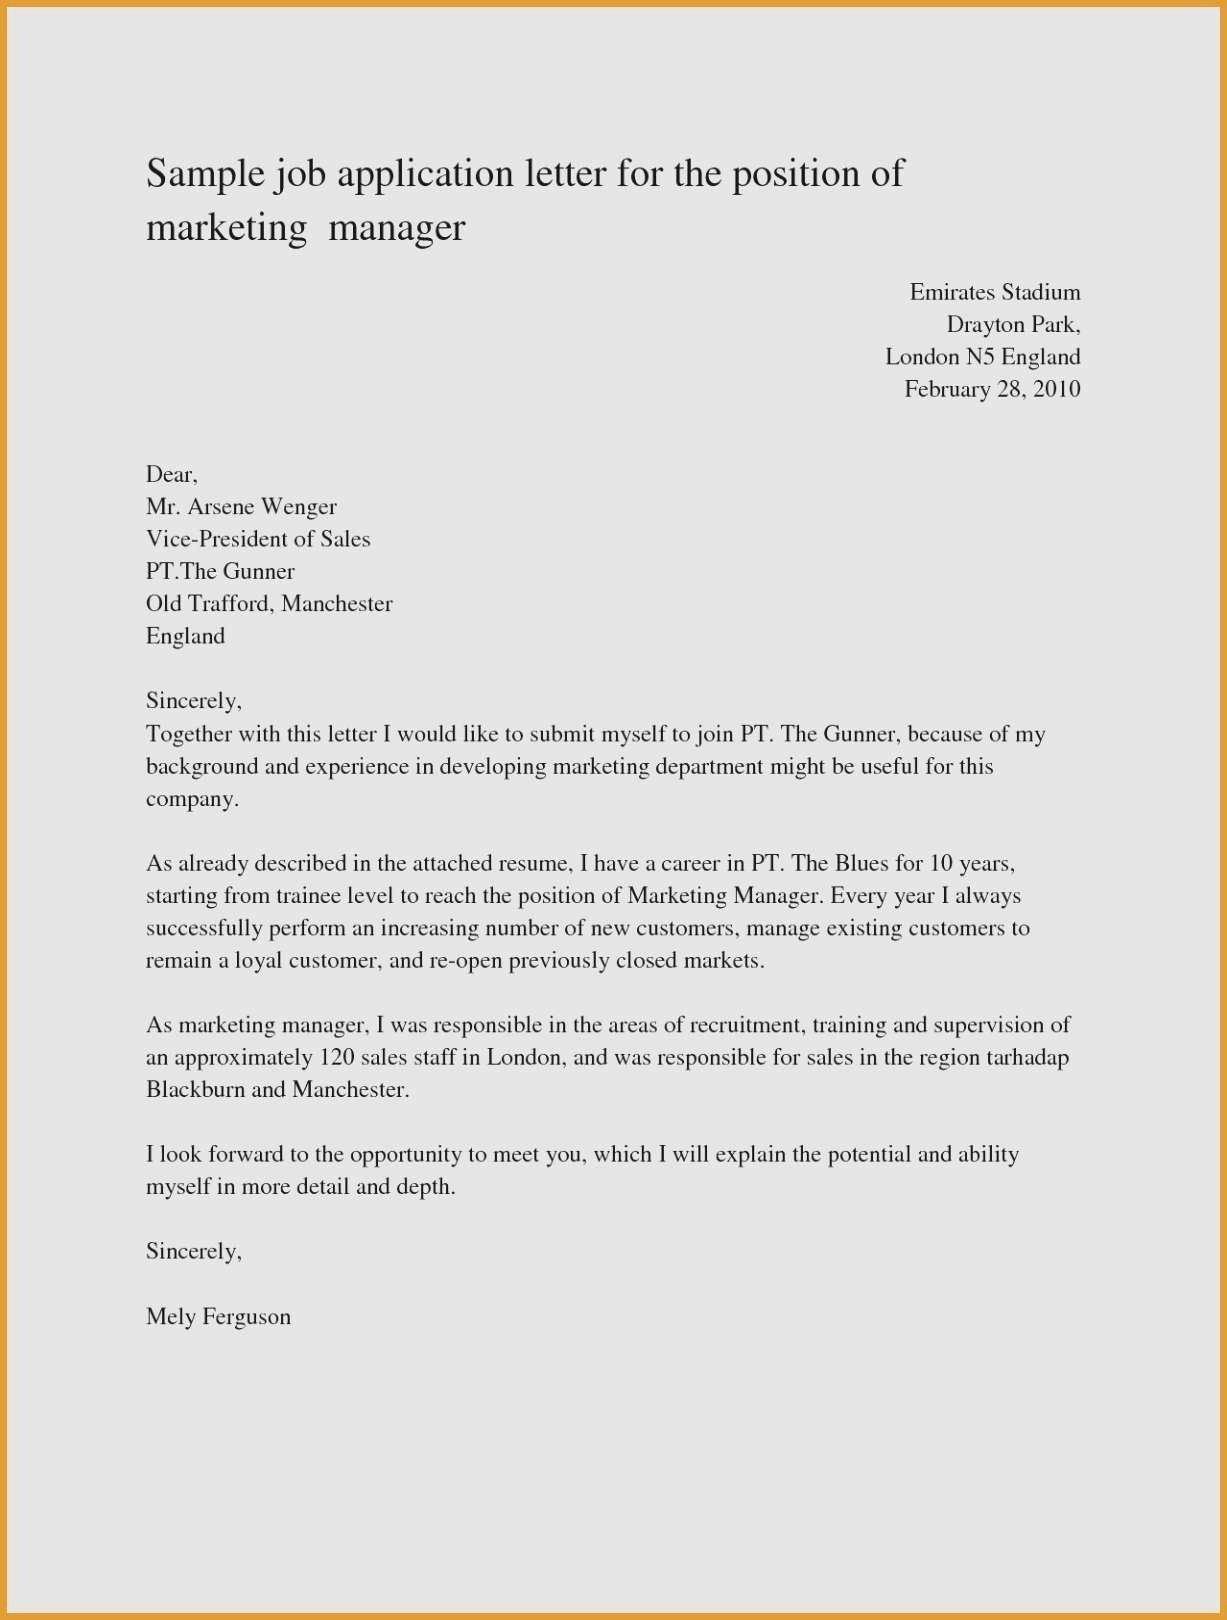 Best Of Samples Of Job Cover Letters Job Cover Letter Job